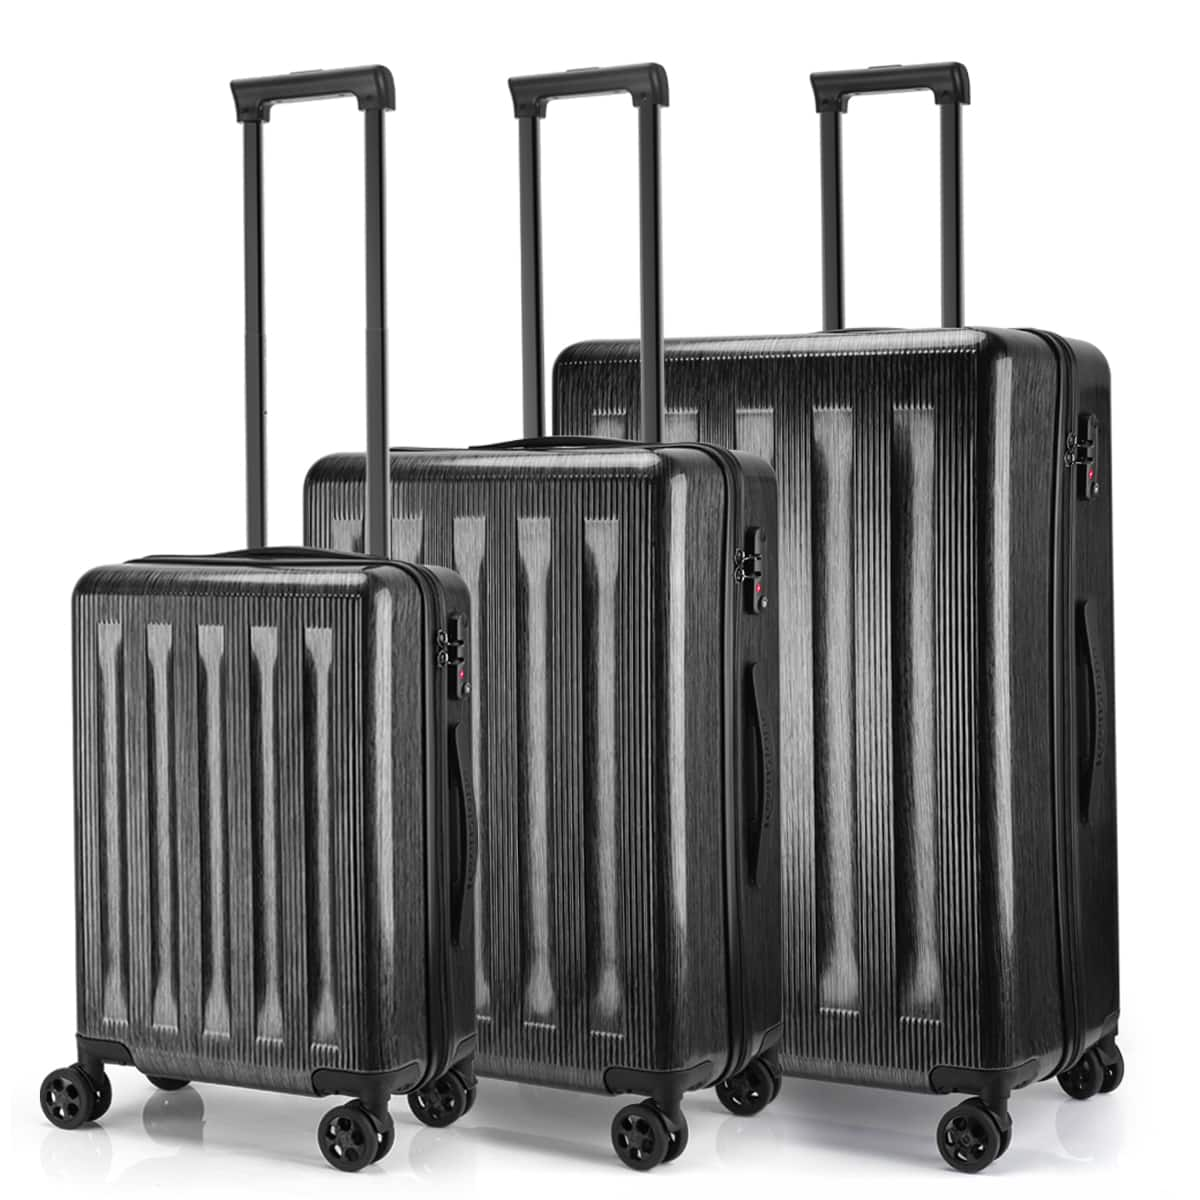 Keenstone Lightweight 3pcs Luggage Sets including 20''/24''/28''with TSA lock and integrated weight scale @ Walmart.  $139.99